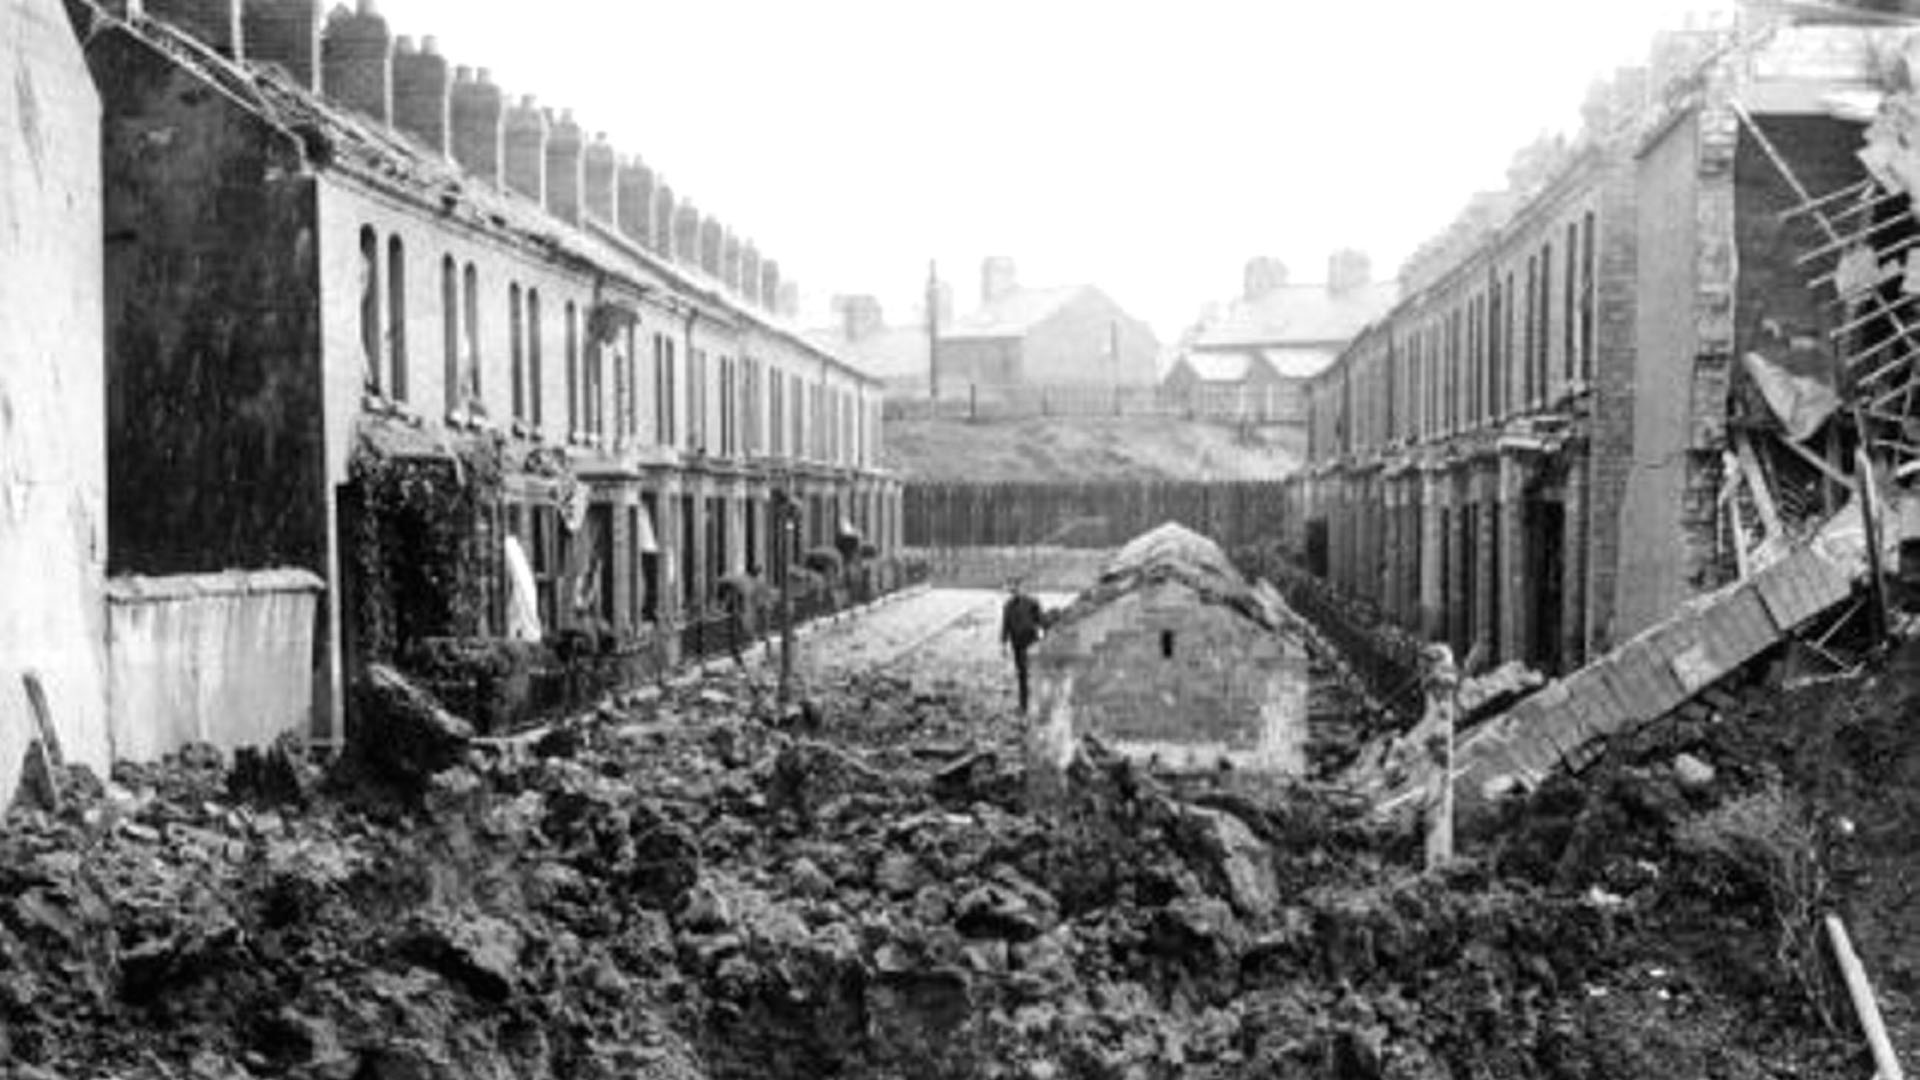 Ravenscroft Avenue, Belfast, Co. Antrim